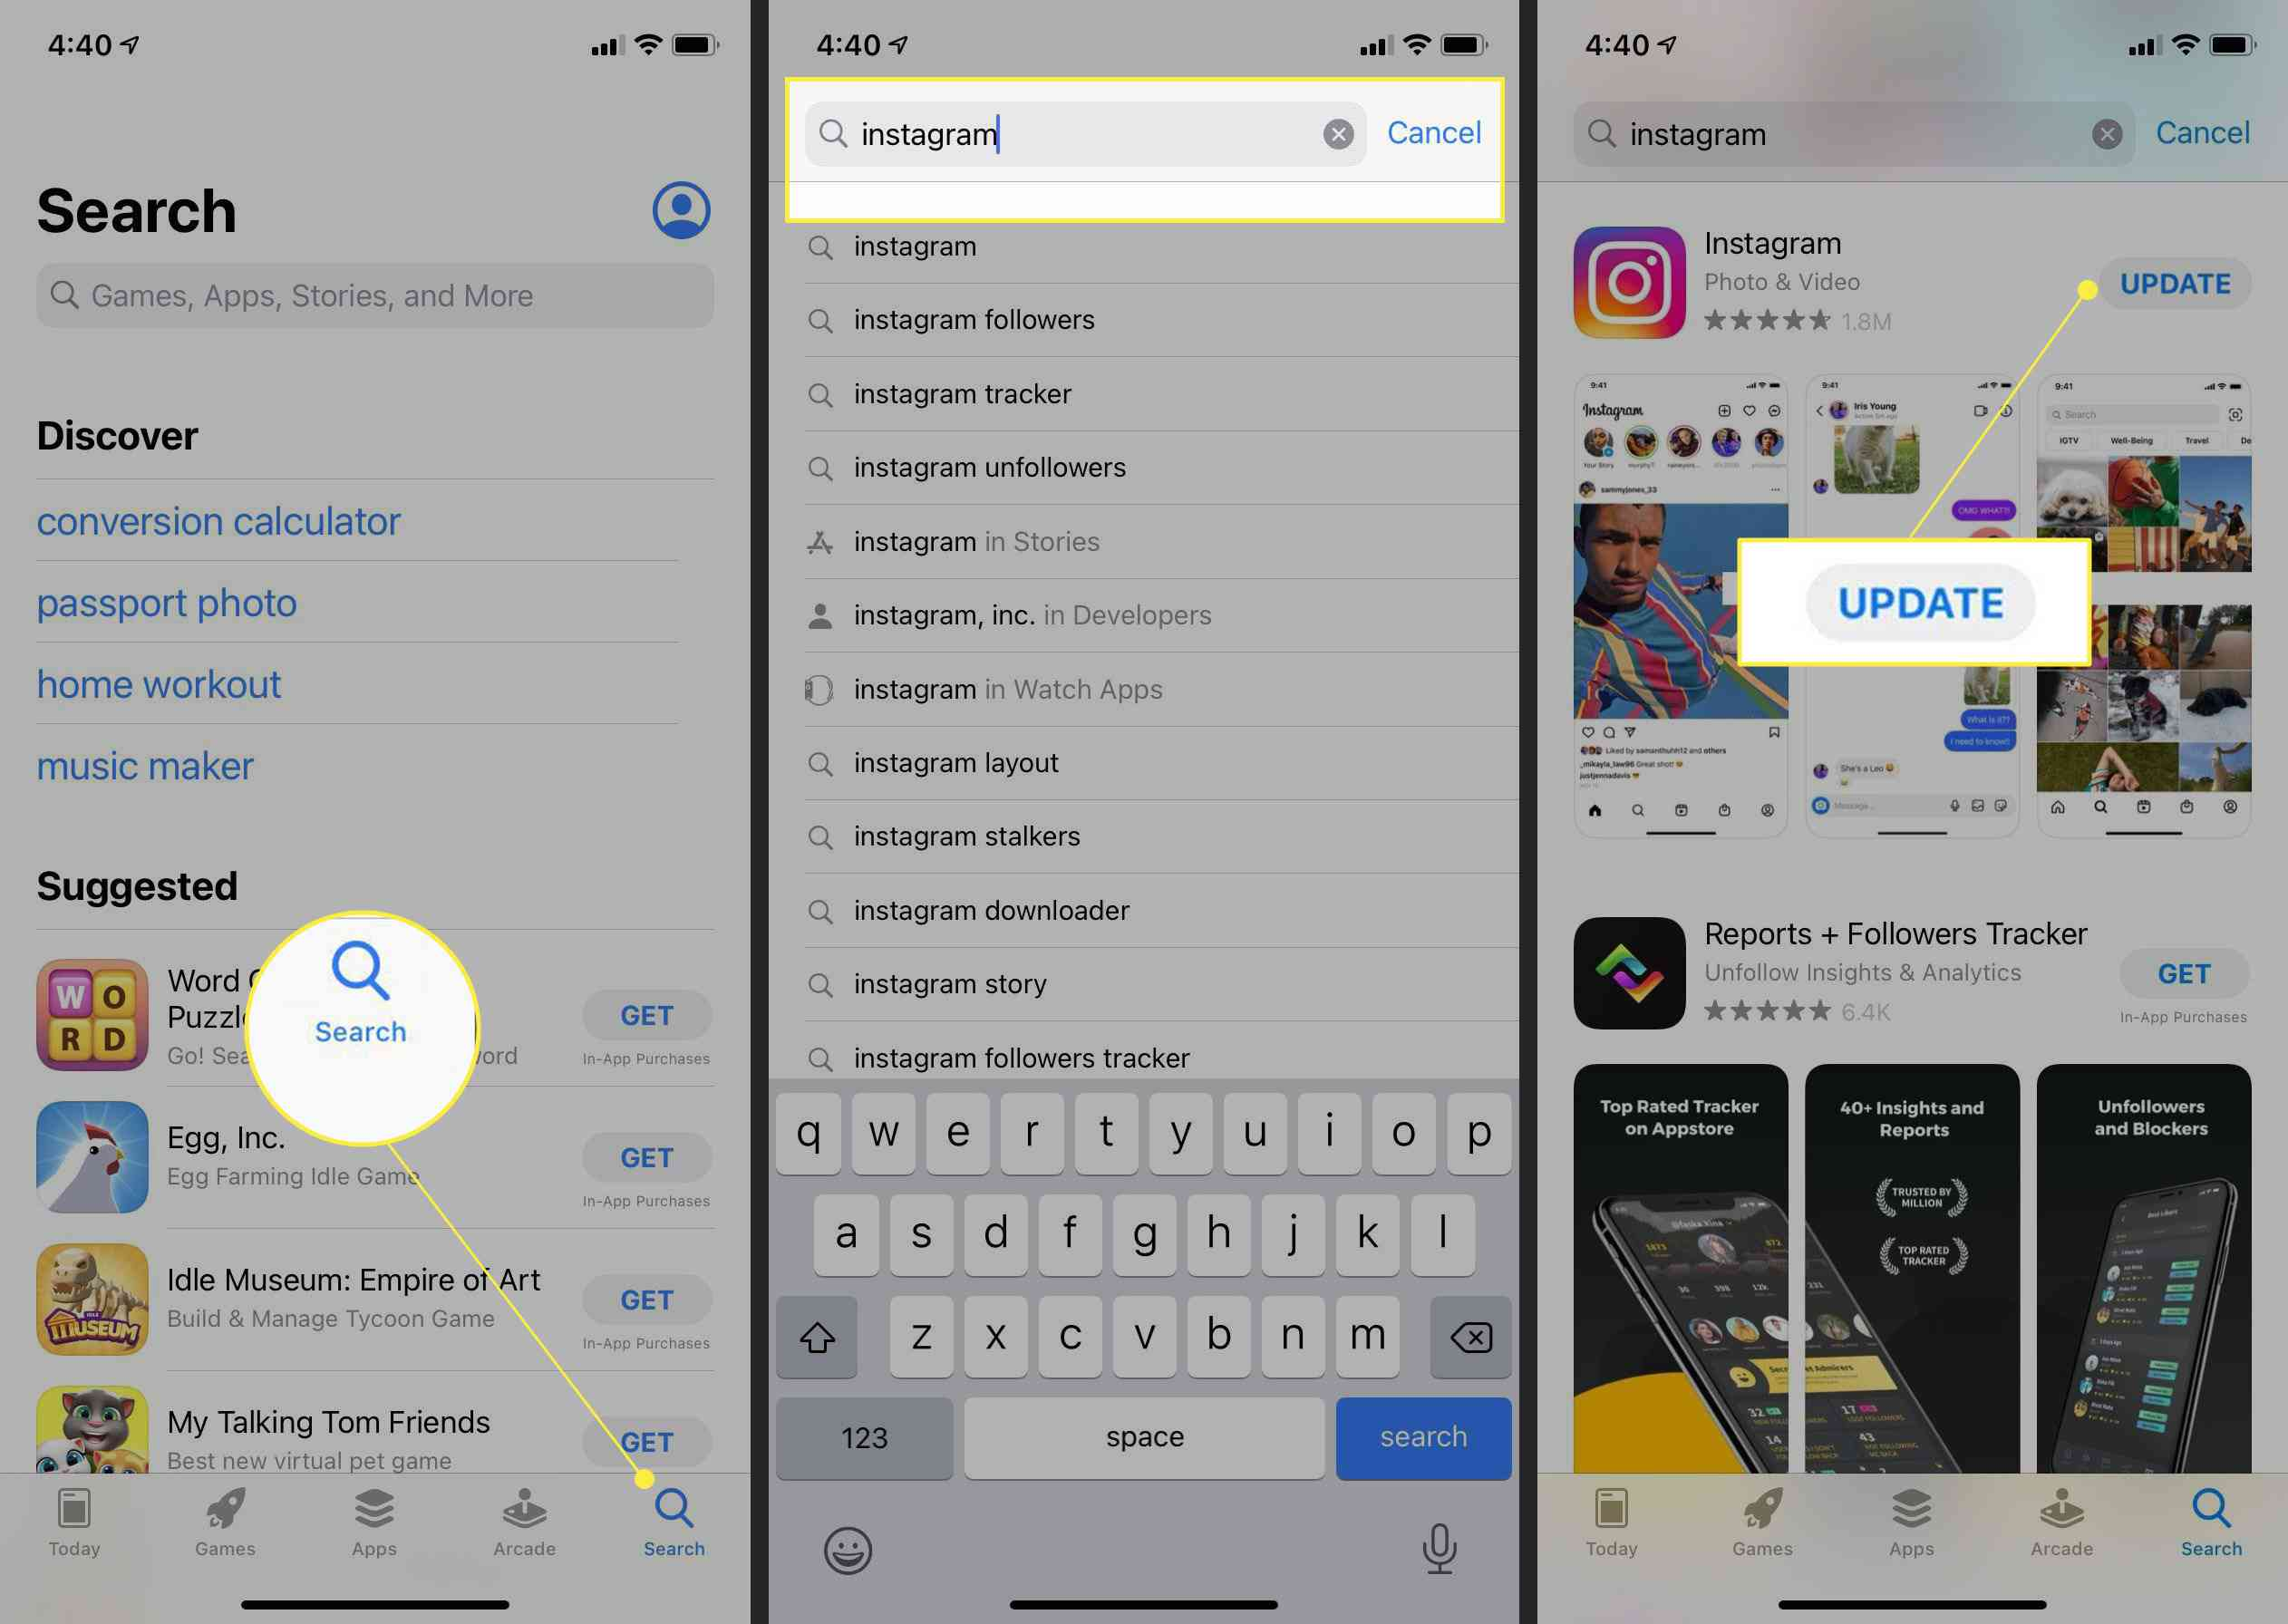 Steps to upgrade the Instagram iOS app, with Search, the Search field, and